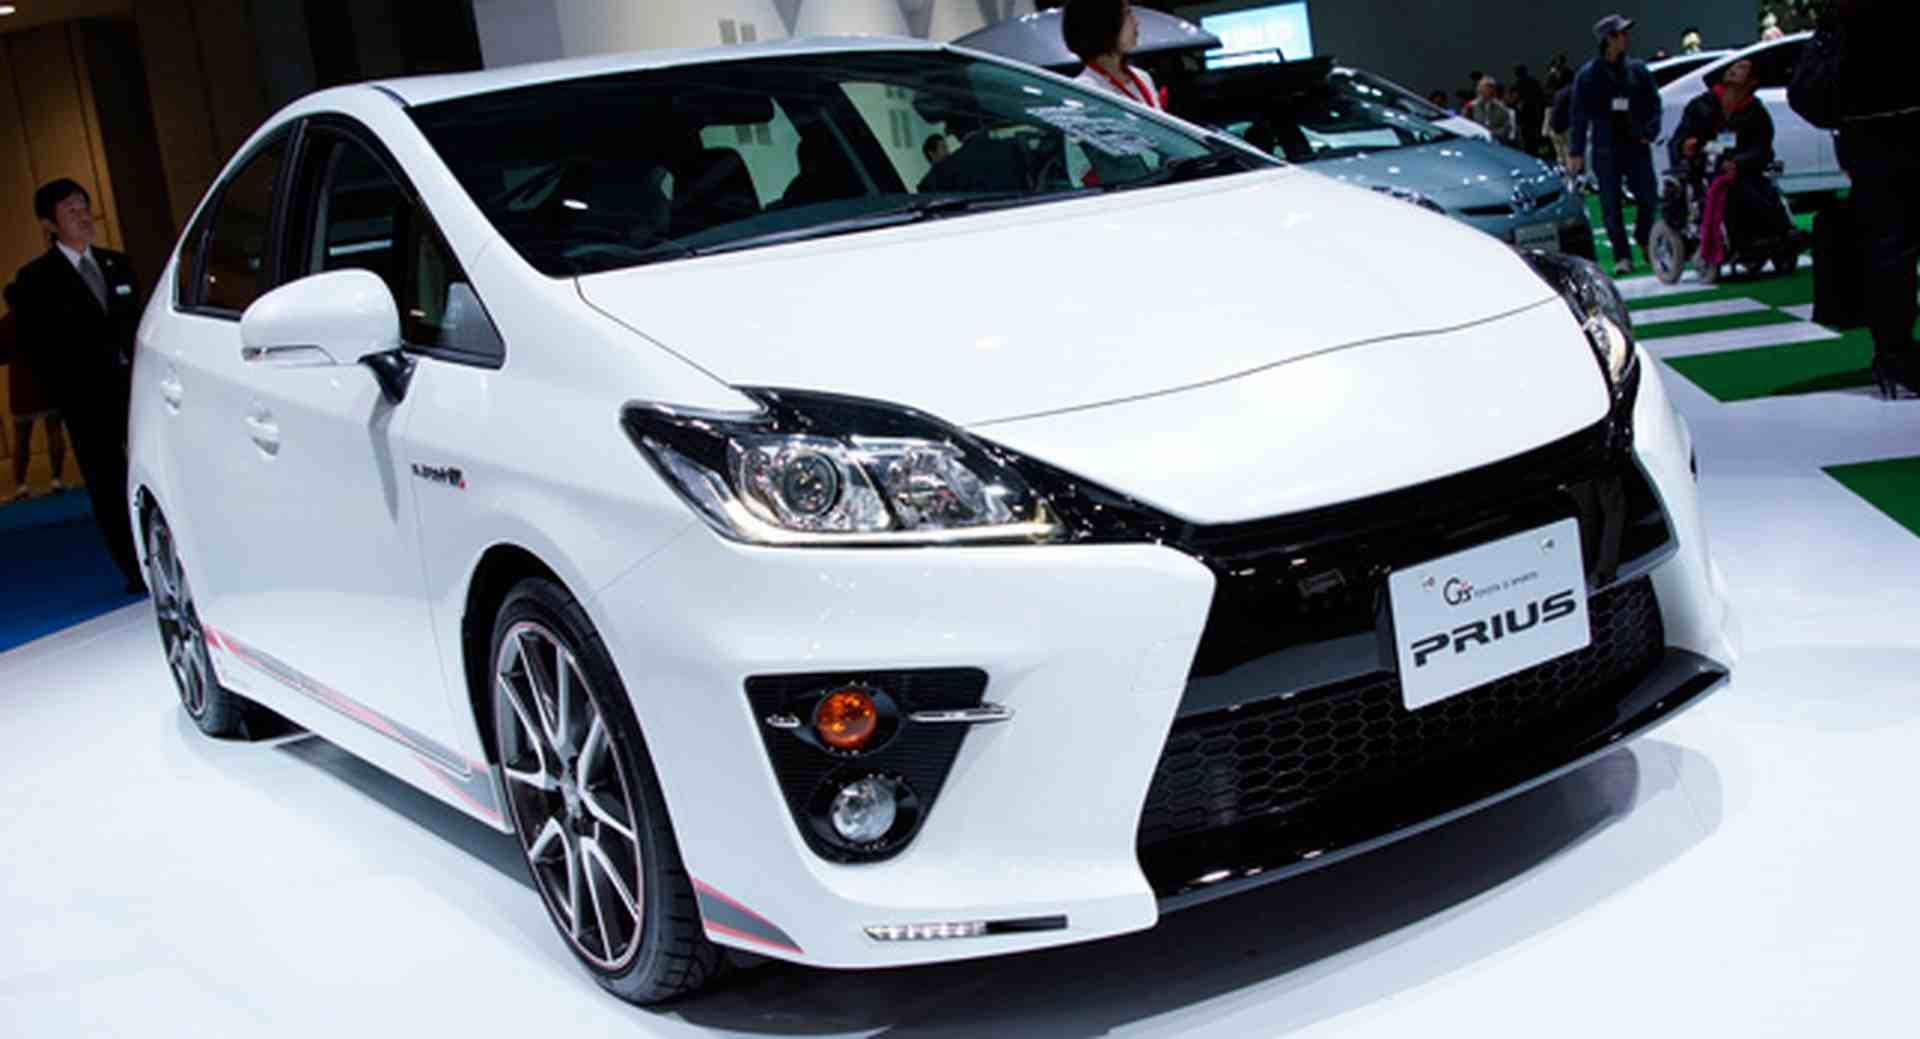 2016 Toyota Prius Redesign Is One Of The Models That Have Already Started To Write Here Are Interior Specs Engine Price Release Date Exterior Concept